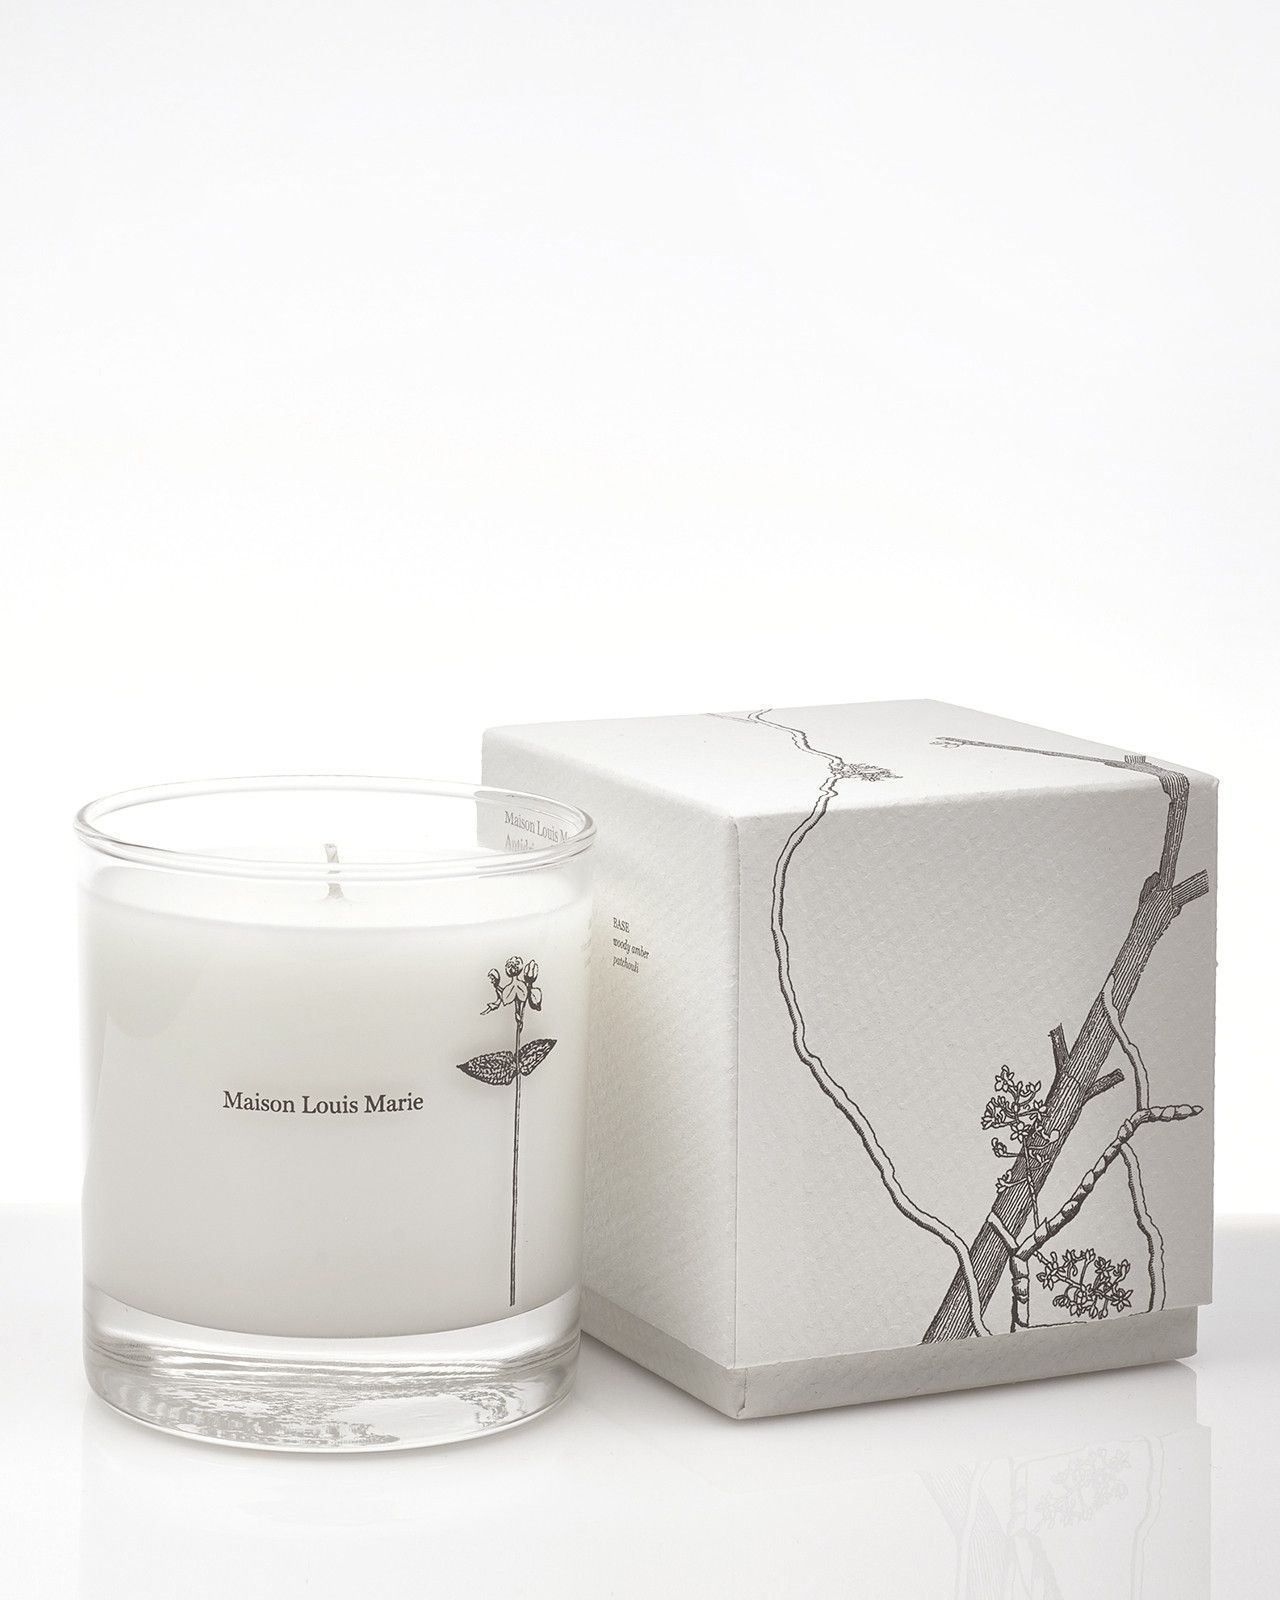 antidris - jasmine | candles and home ´s spirit | packaging, bougie